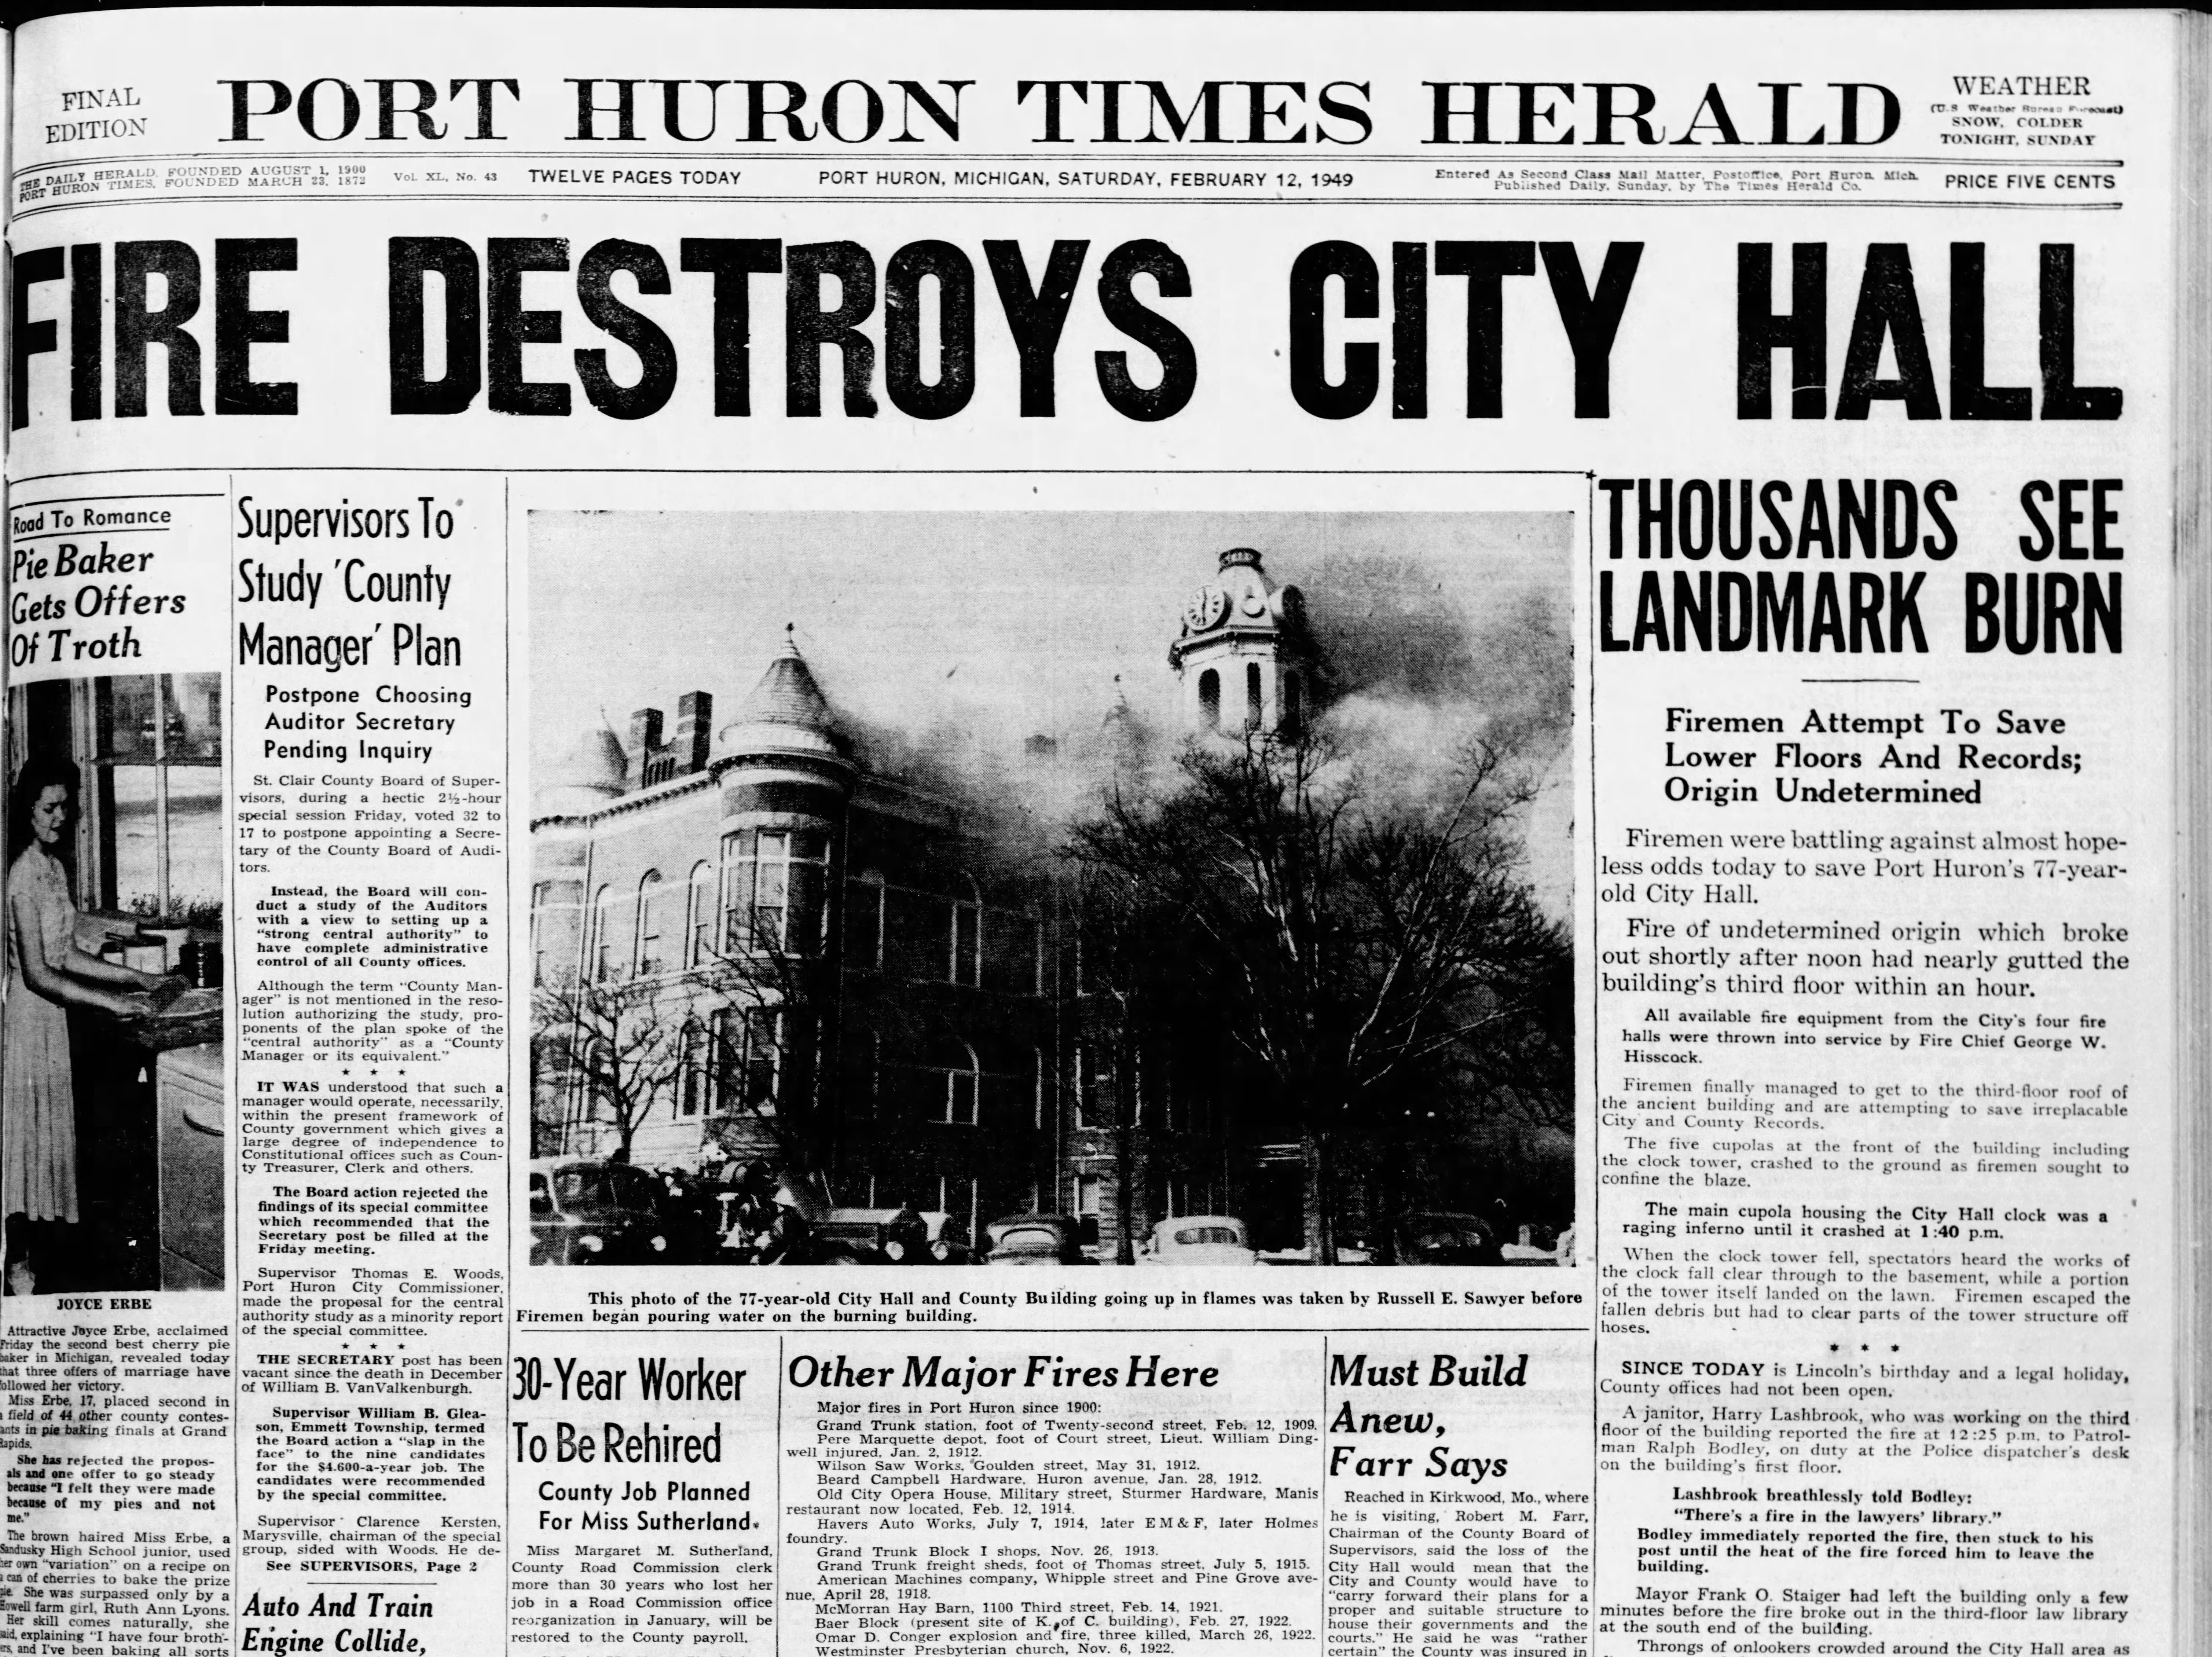 The front page of the Times Herald Saturday, Feb. 12, 1949. The paper was published the same day as the fire.